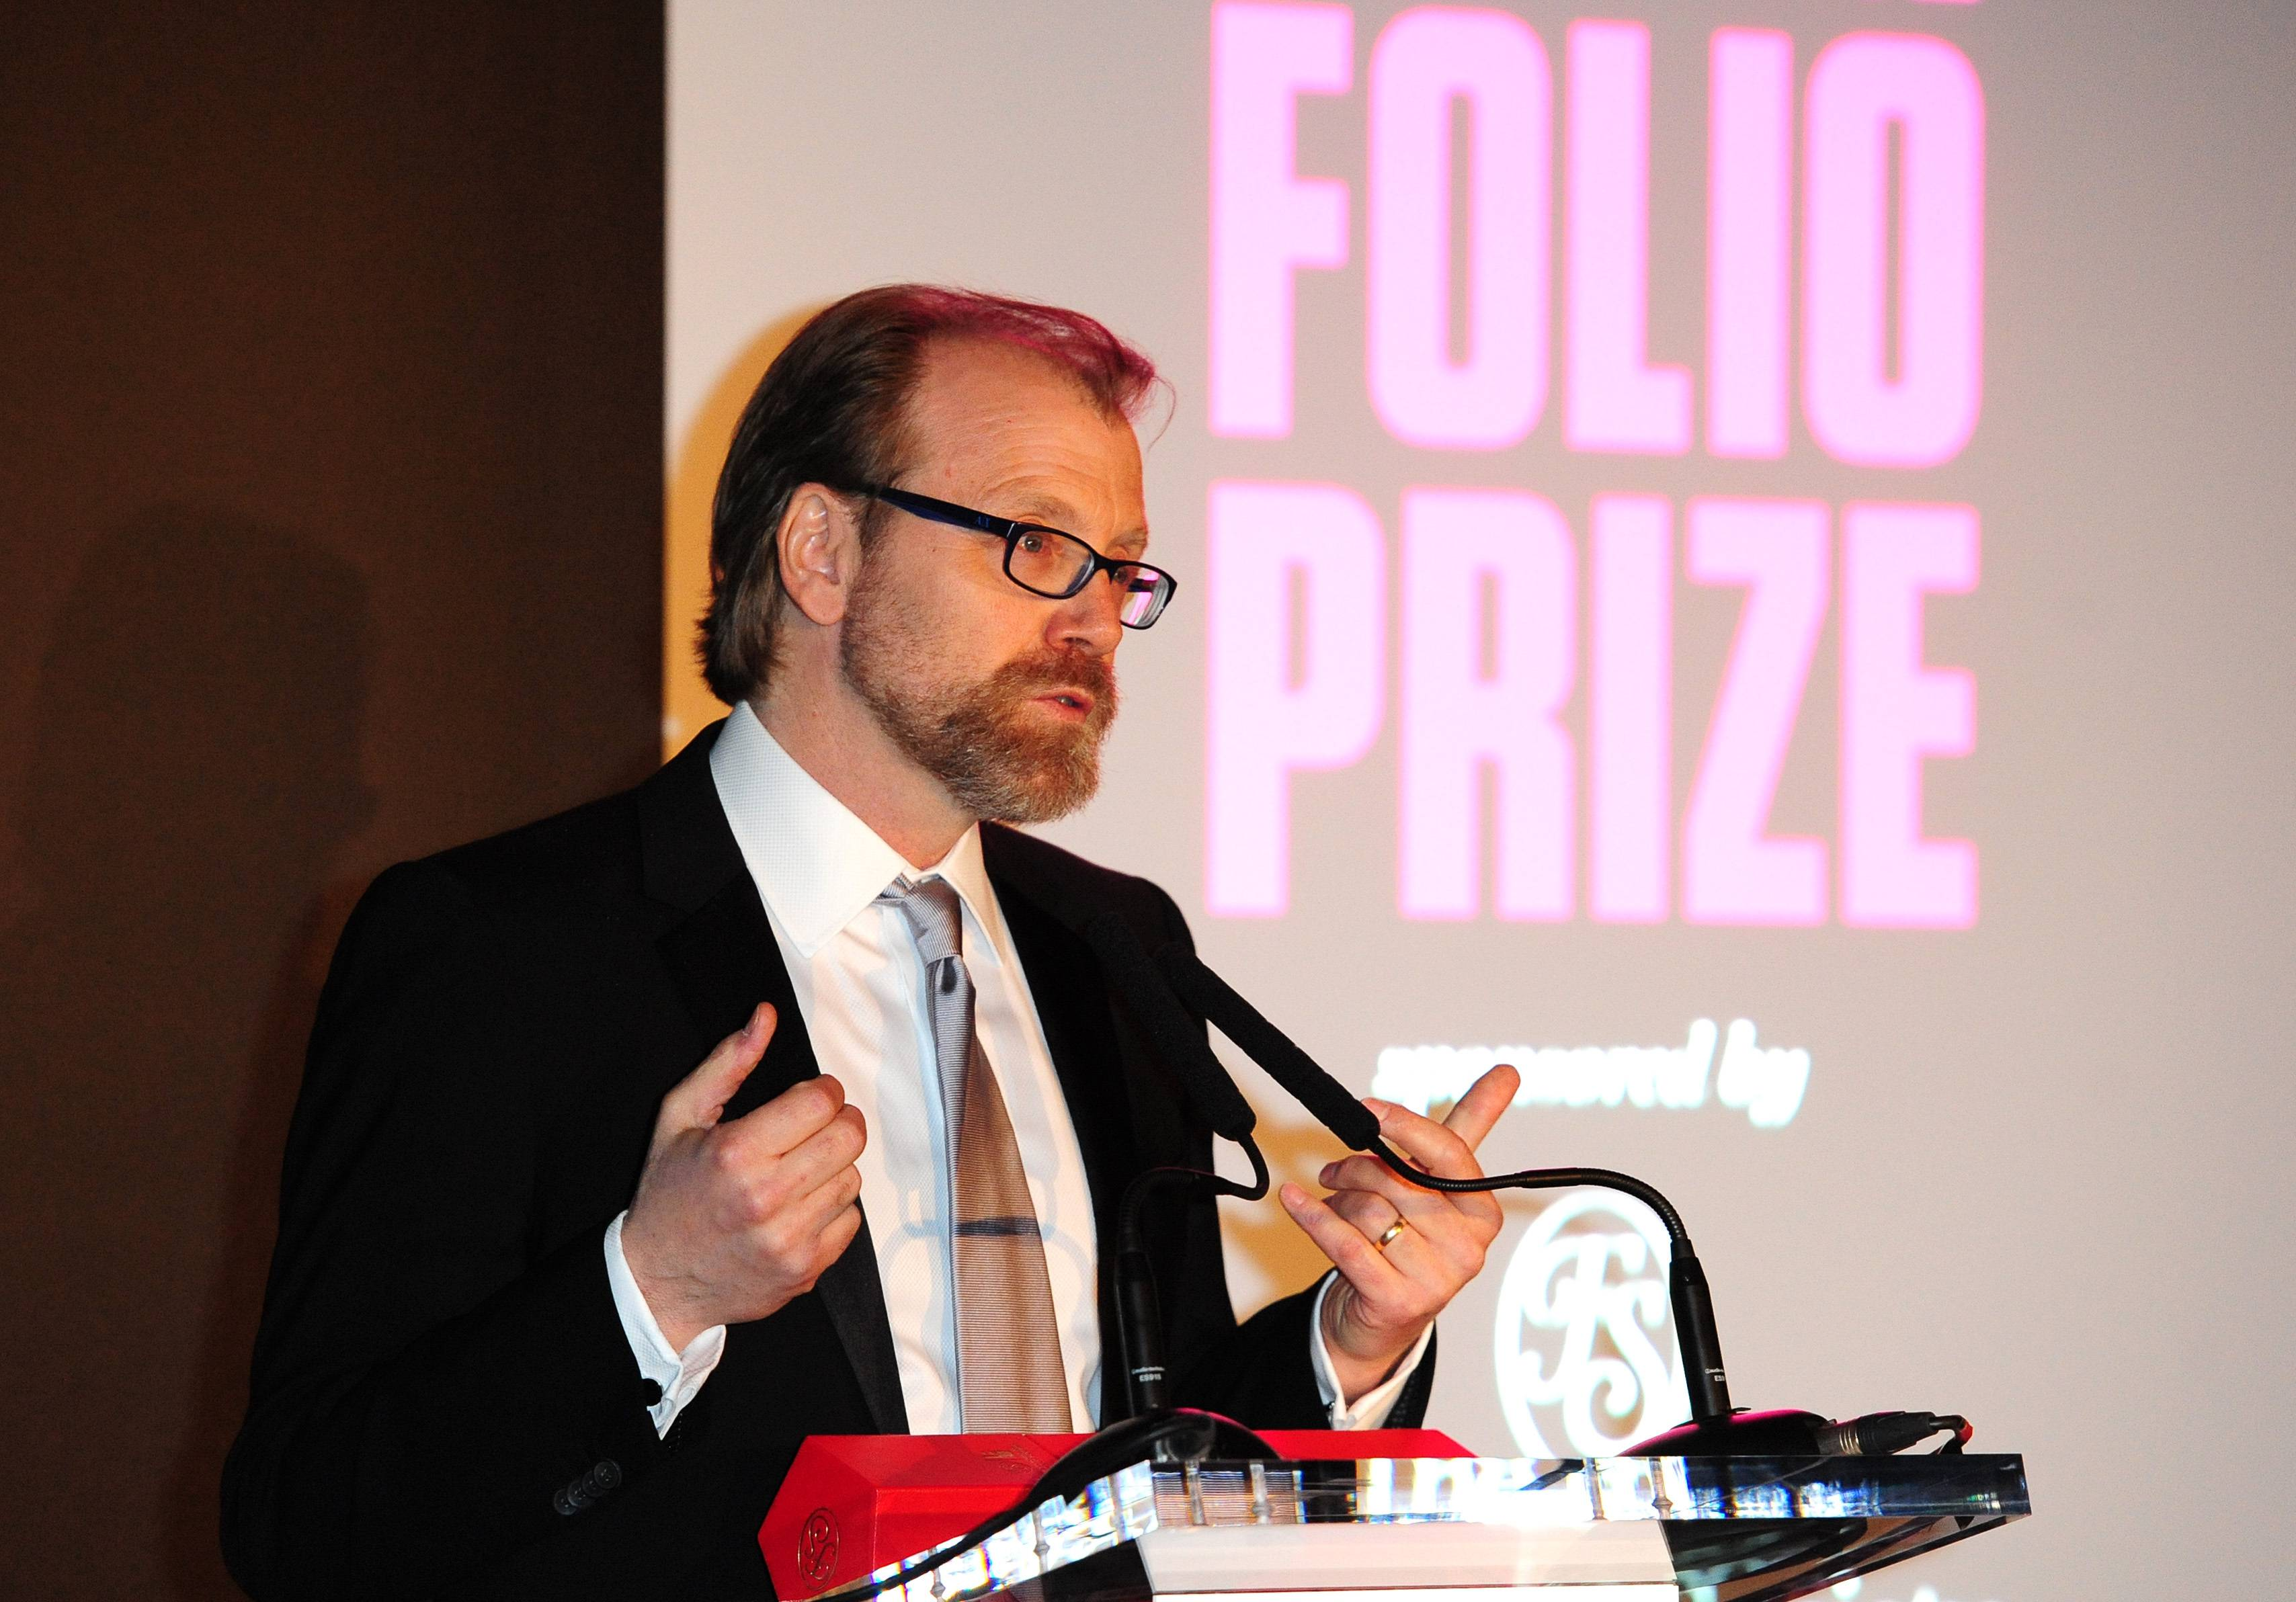 George Saunders gives a speech after winning the Folio Prize Monday in London.